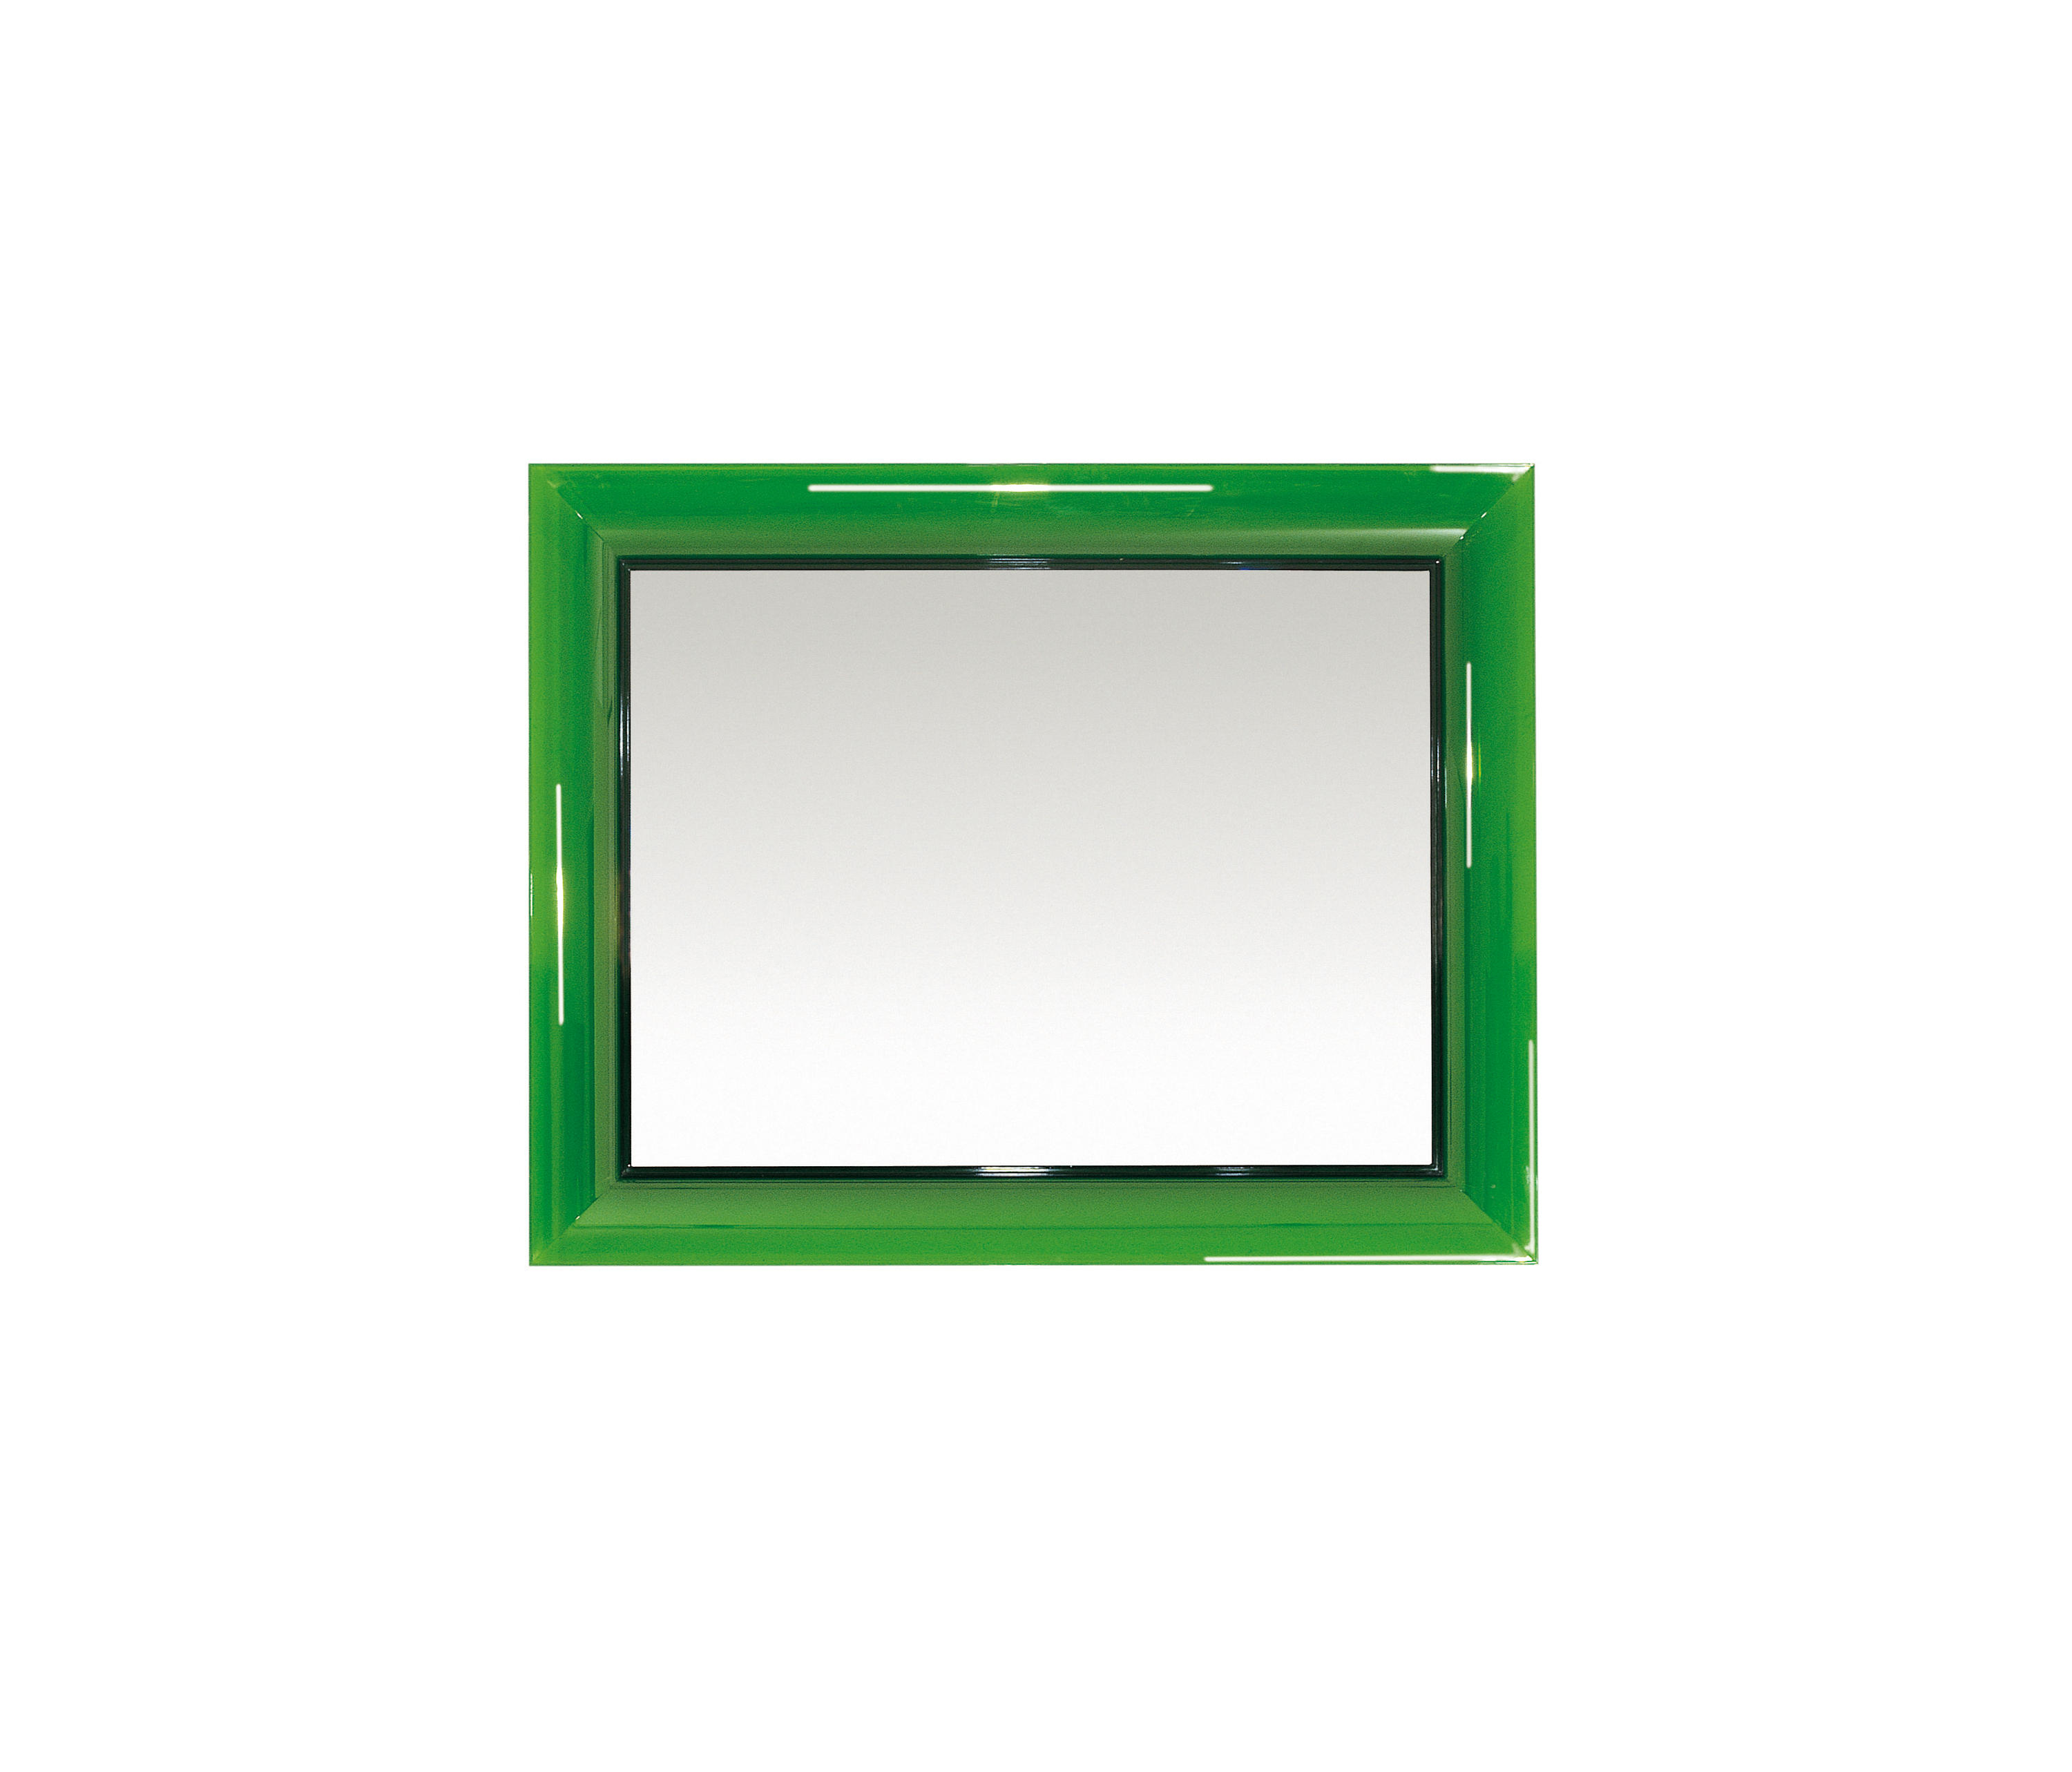 Fran ois ghost mirrors from kartell architonic for Miroir francois ghost kartell